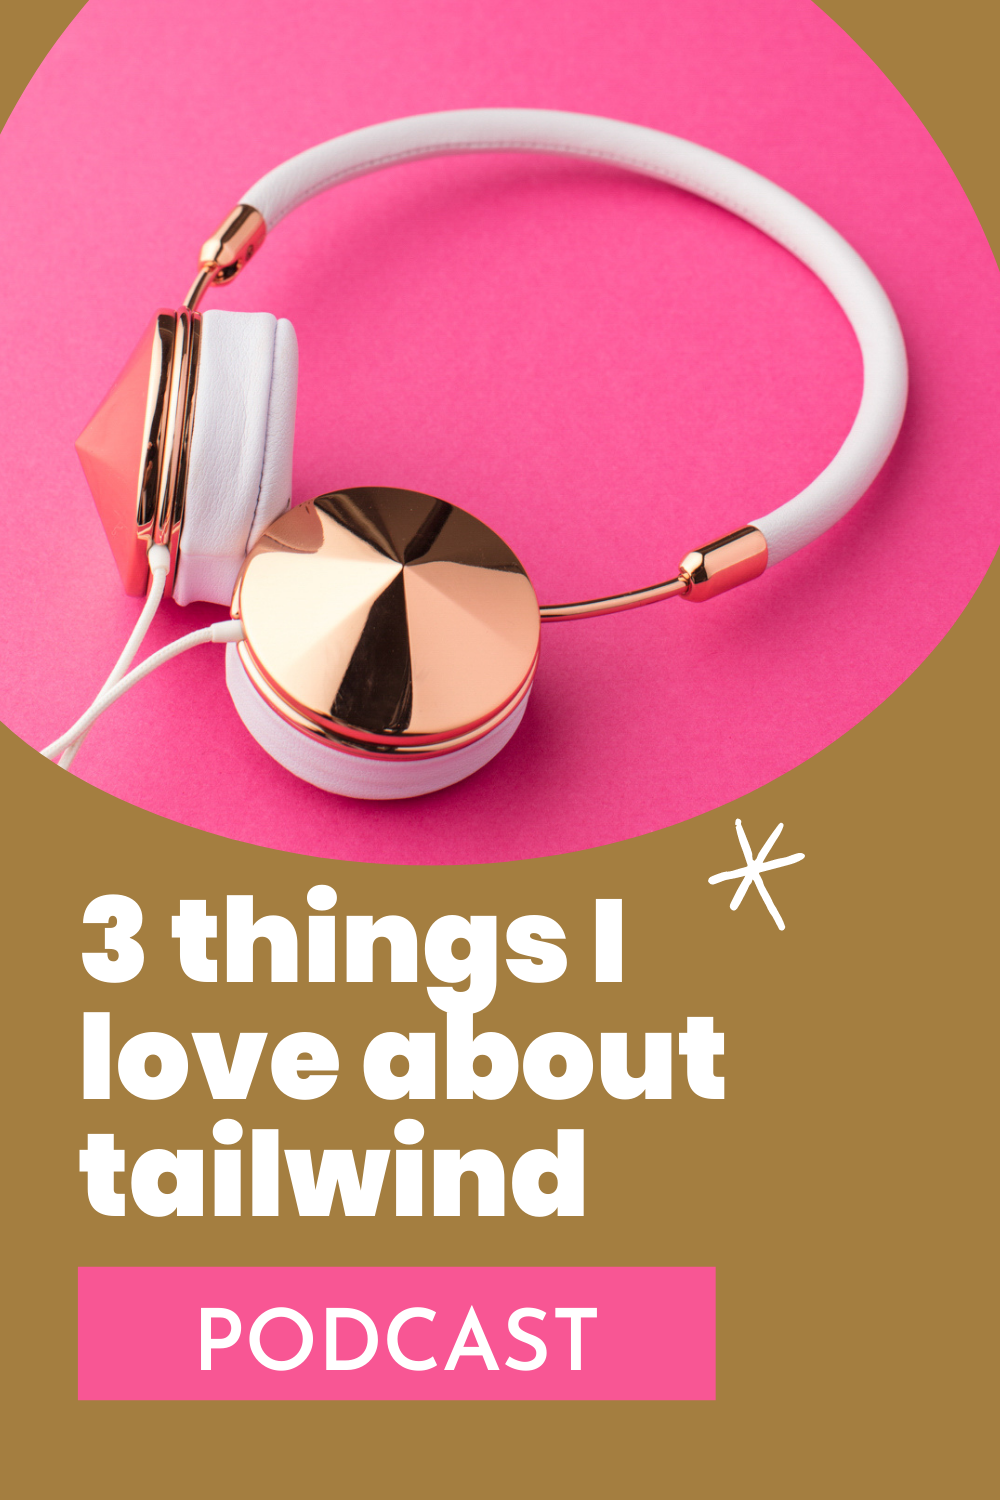 3 things I love about tailwind